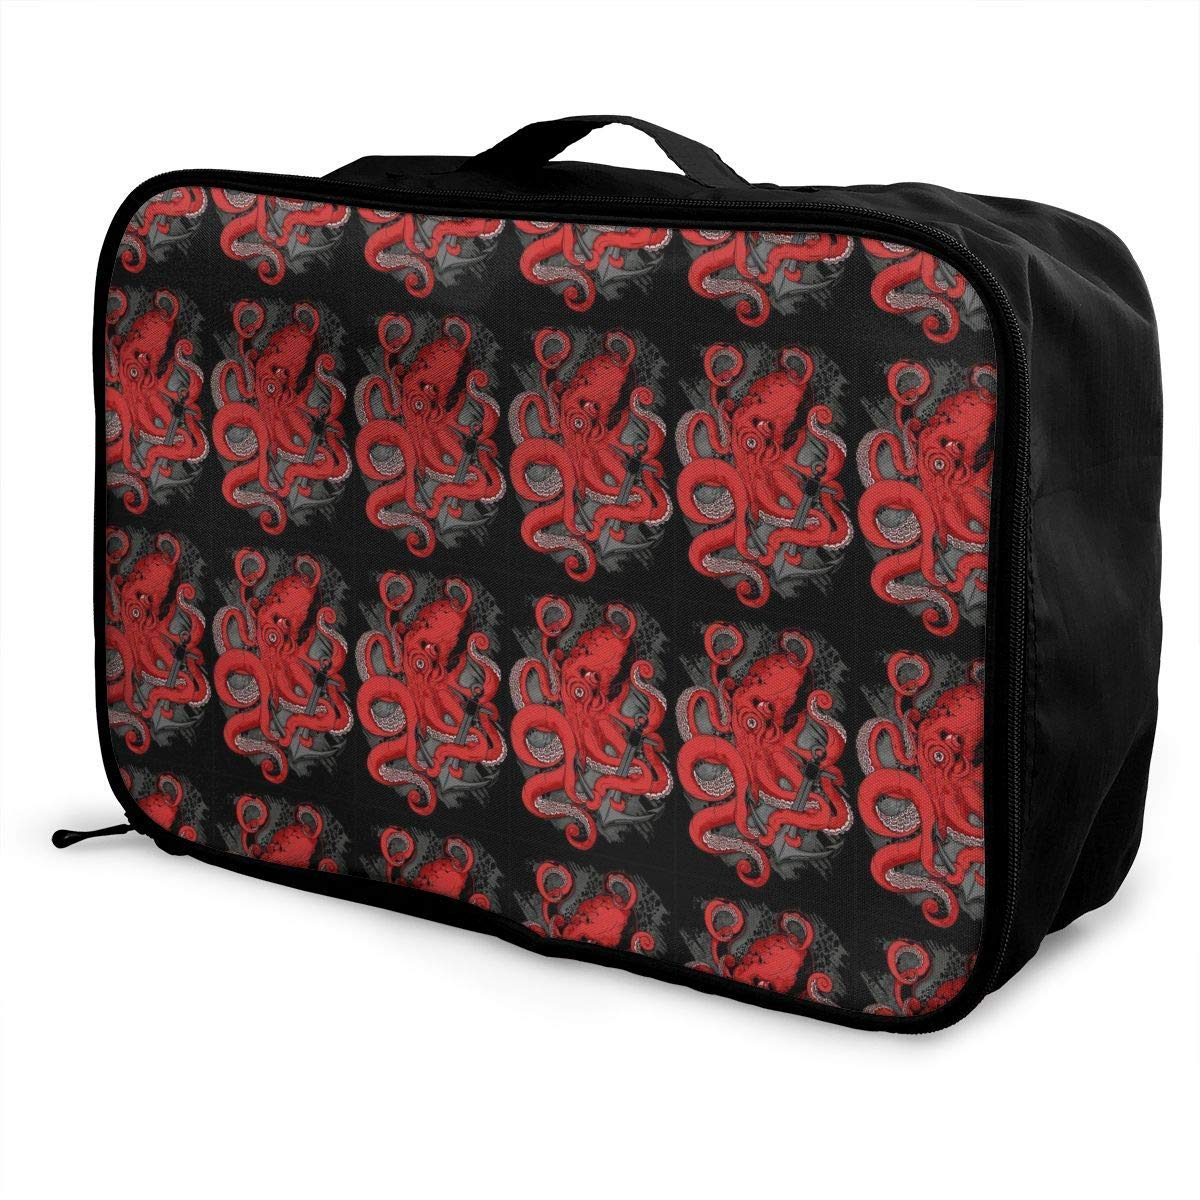 Travel Lightweight Waterproof Foldable Storage Carry Luggage Duffle Tote Bag JTRVW Luggage Bags for Travel Red Octopus Nautical Anchor Artwork Black